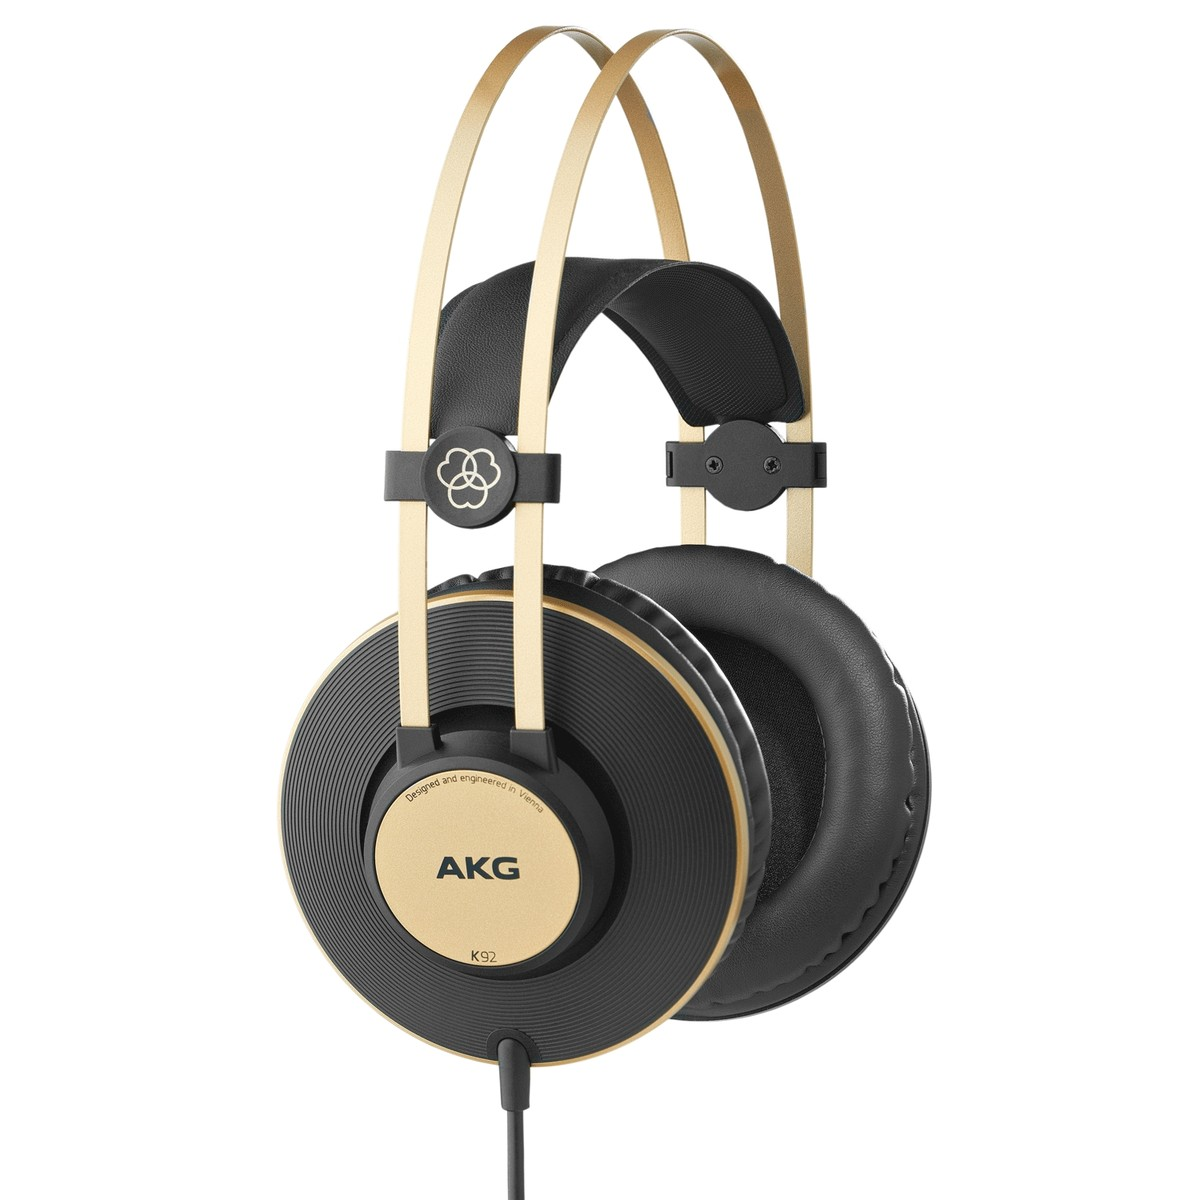 The AKG K92's are an excellent entry level pair of headphones for podcasting